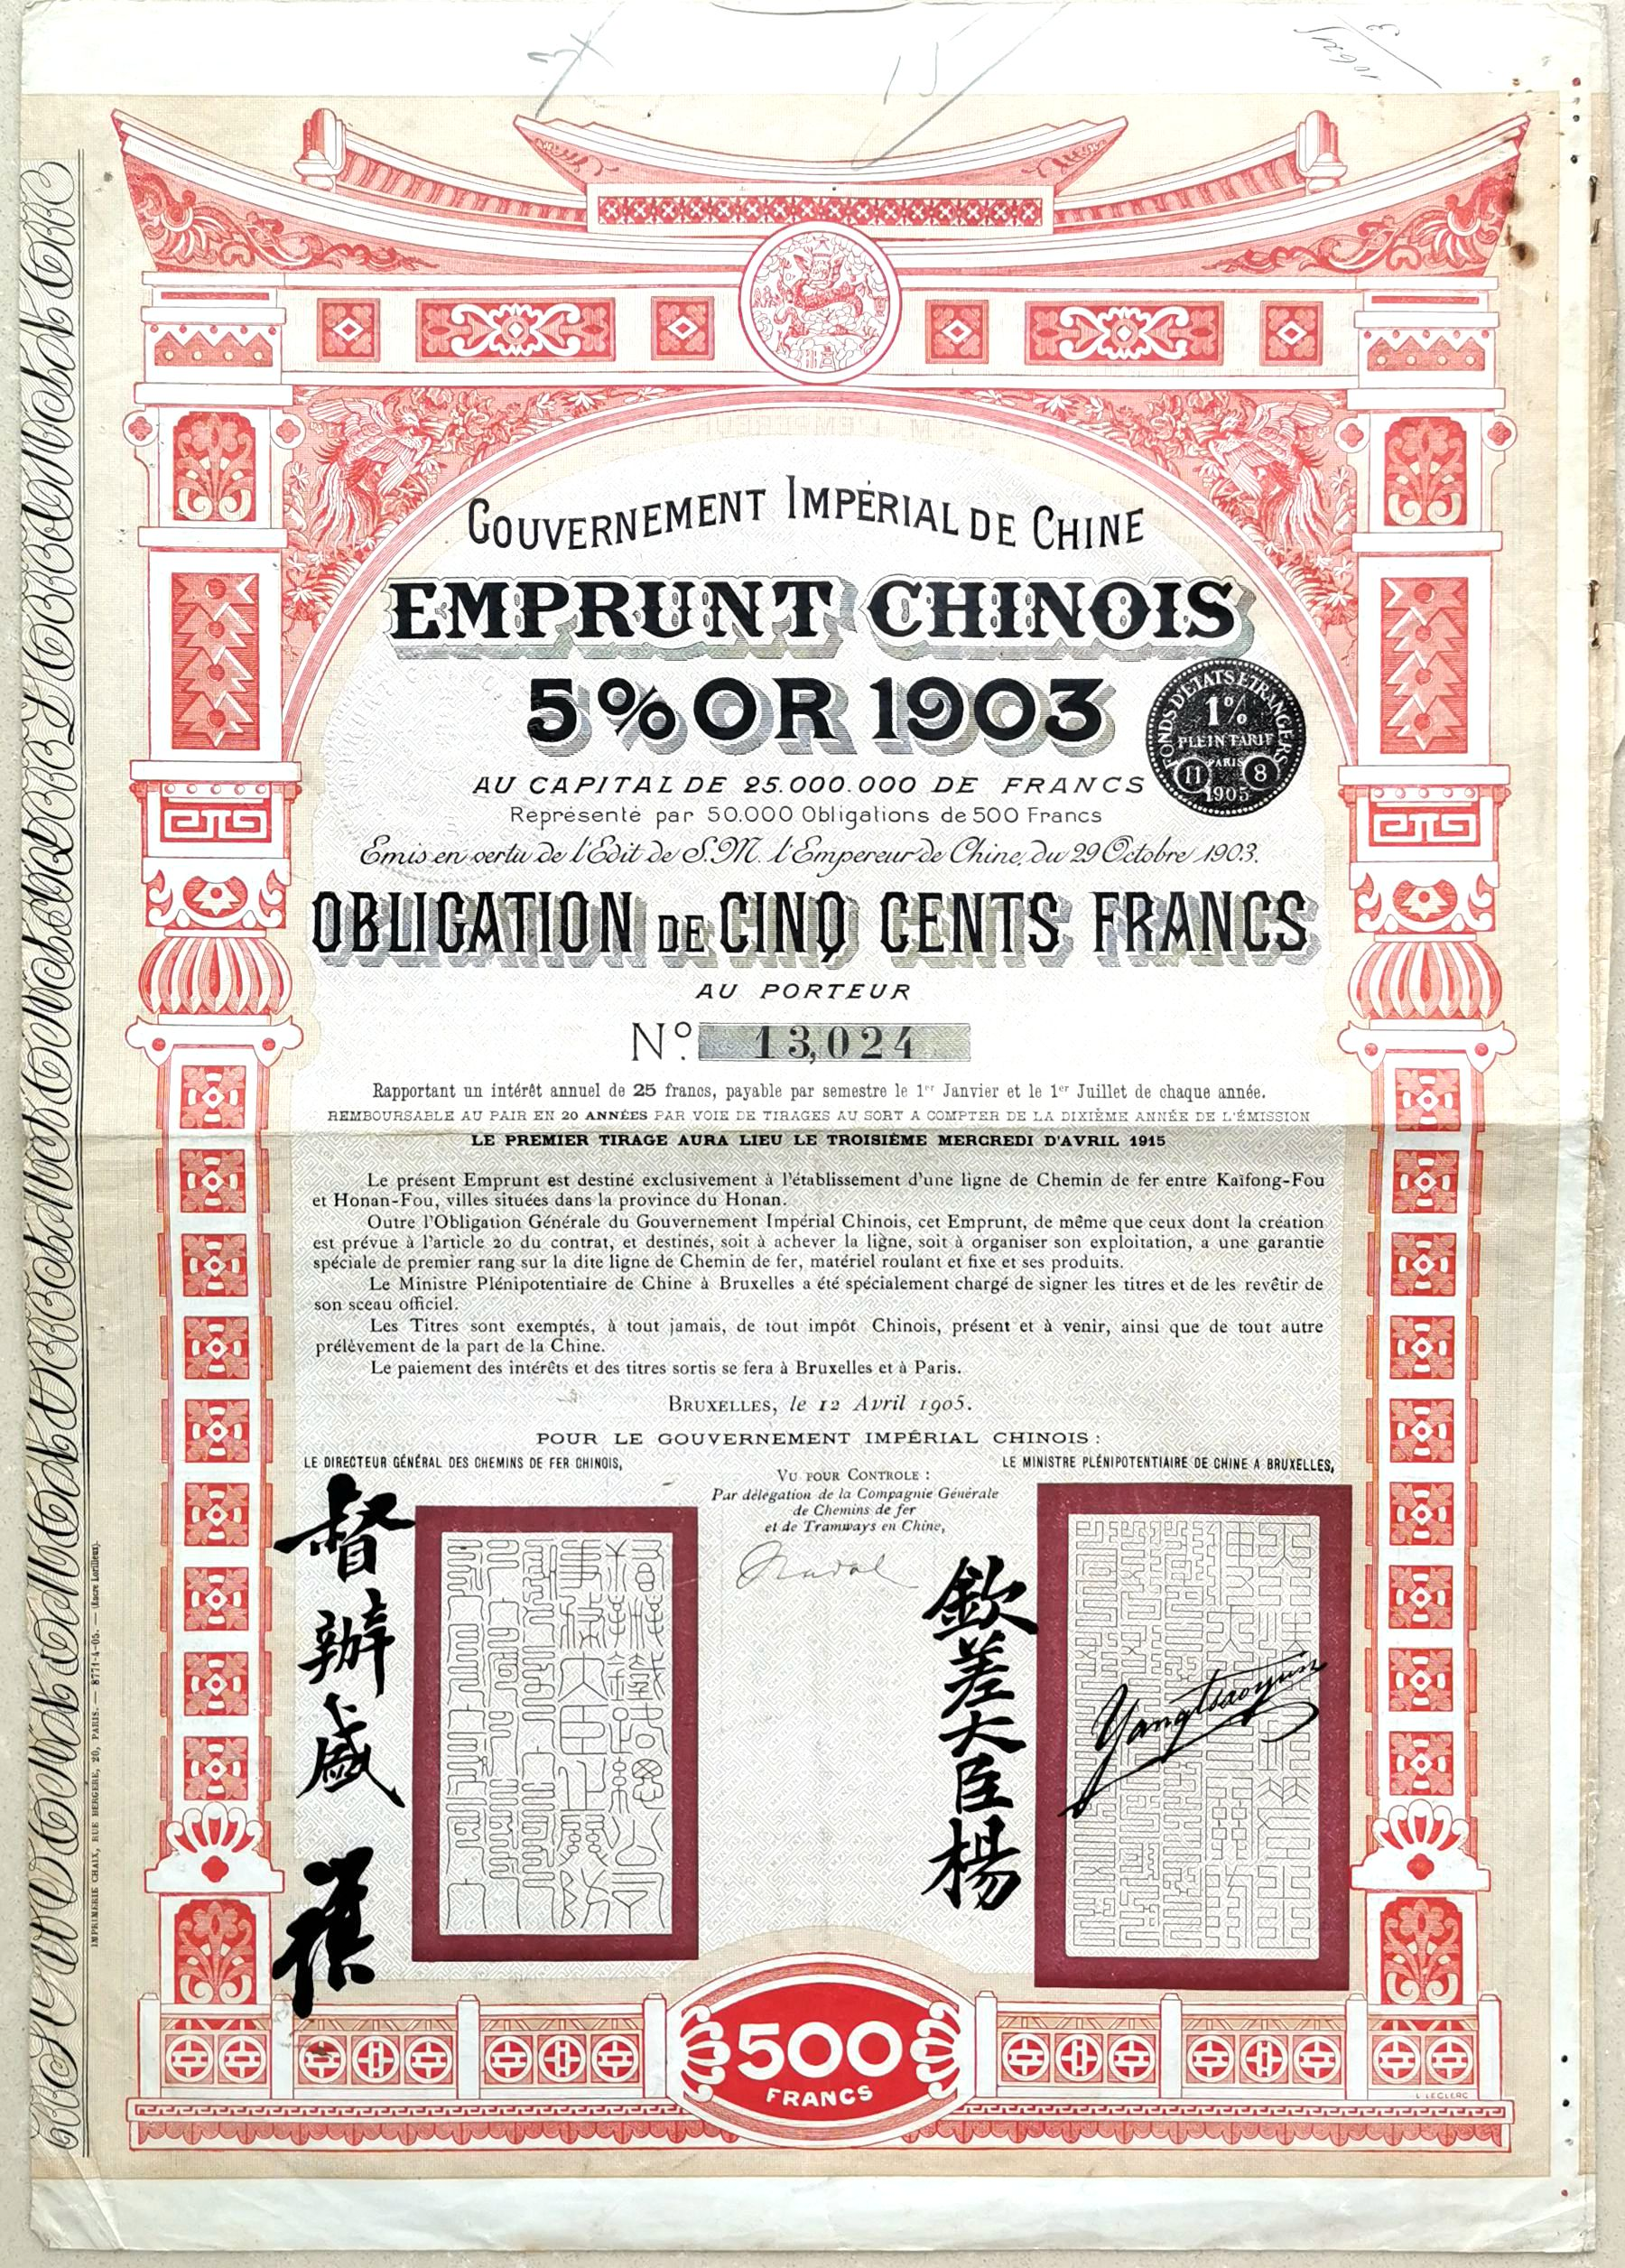 B9058, China Imperial Government 5% Gold Loan Pien Lo Railway 1903, 500 Francs